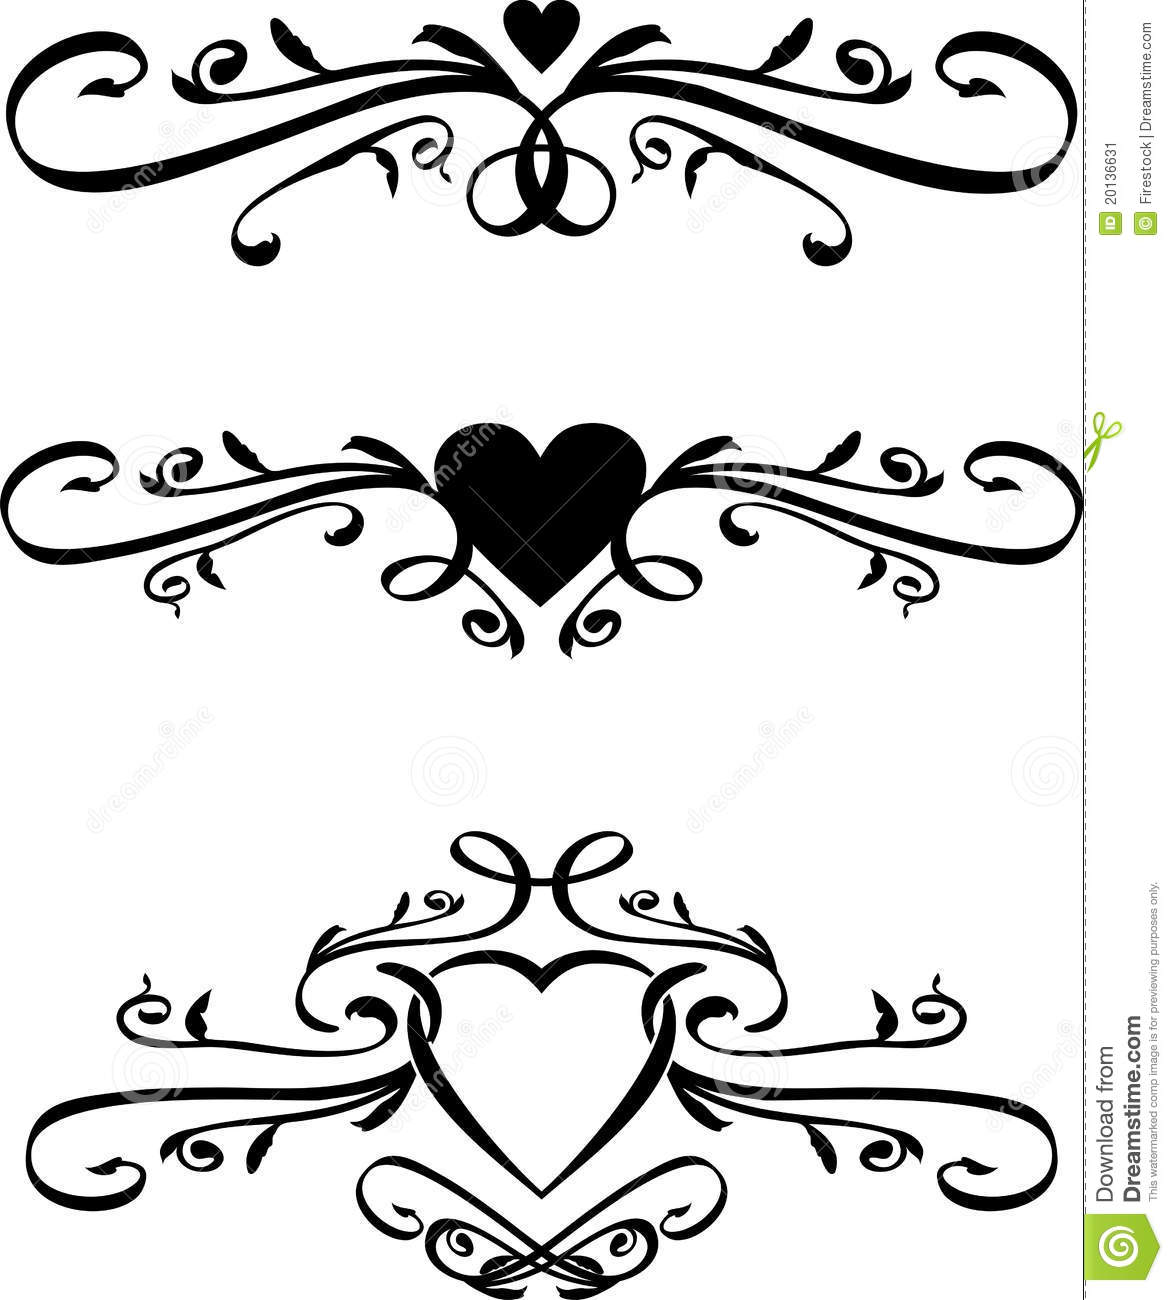 Princess crown additionally 1642 Free Clipart Of A Snail as well 3943941 together with Cindy Suen Happy Mothers Day My Fav Heart Emoji Dkawfnfjxkixa besides White Lace Background. on pink heart